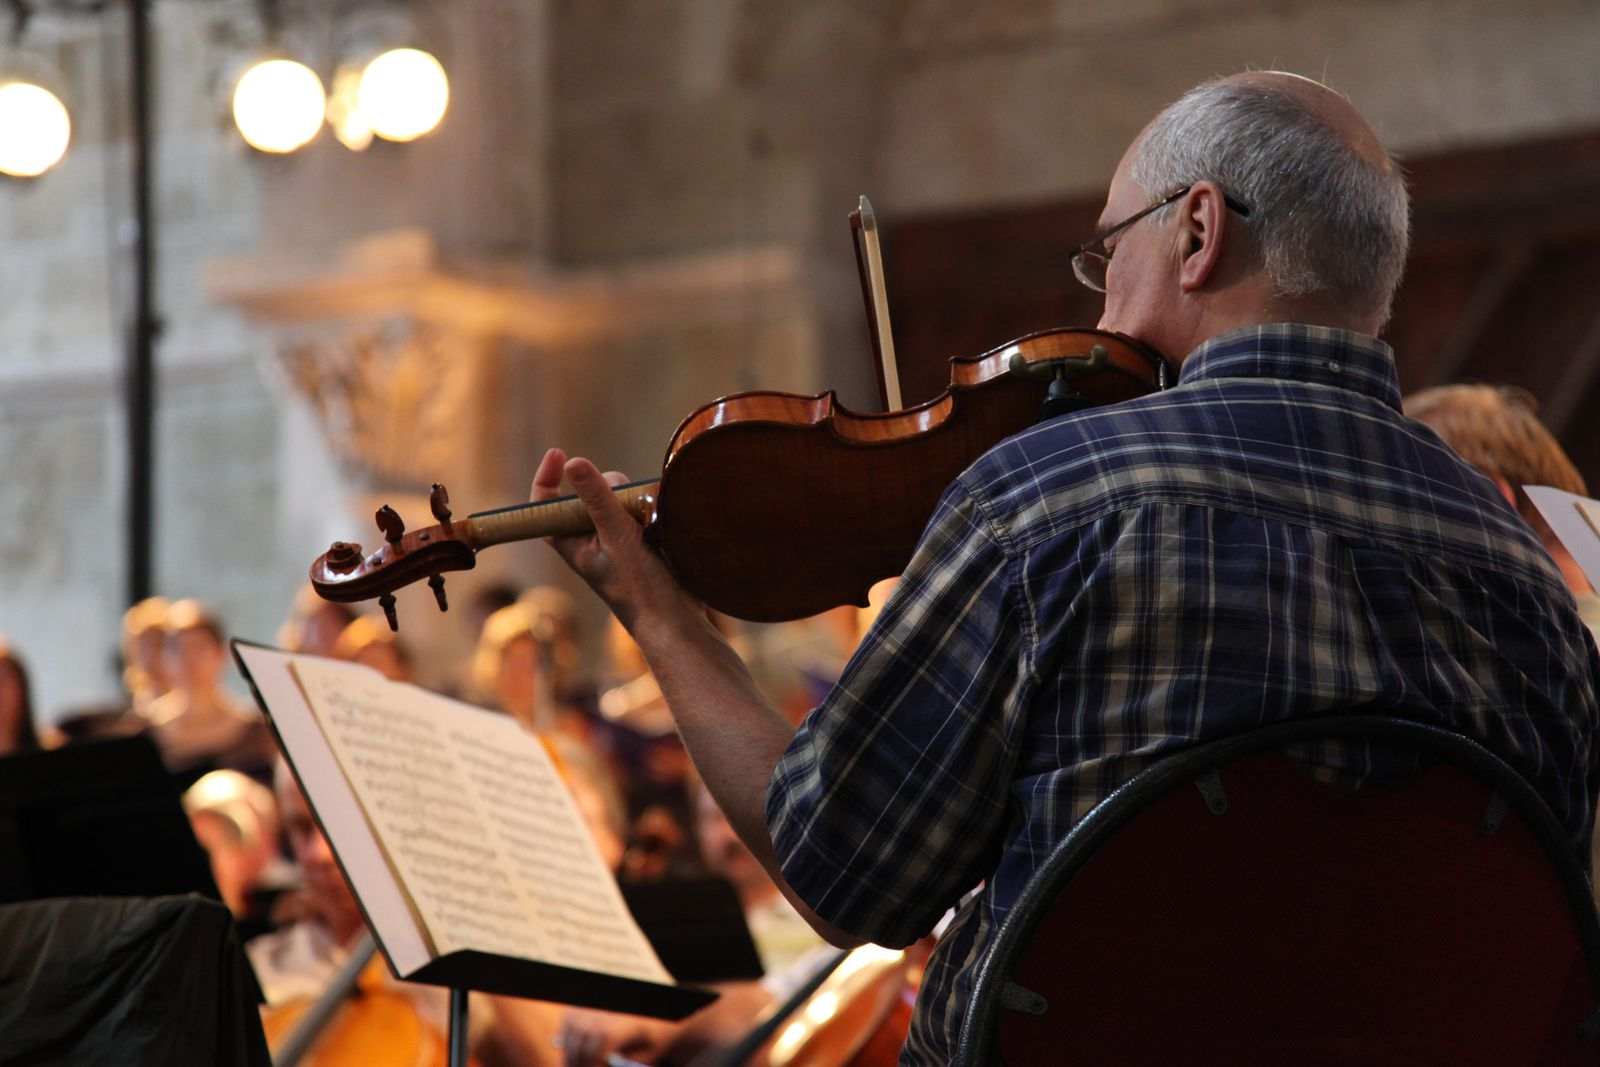 Rencontres musicales des neuf fontaines